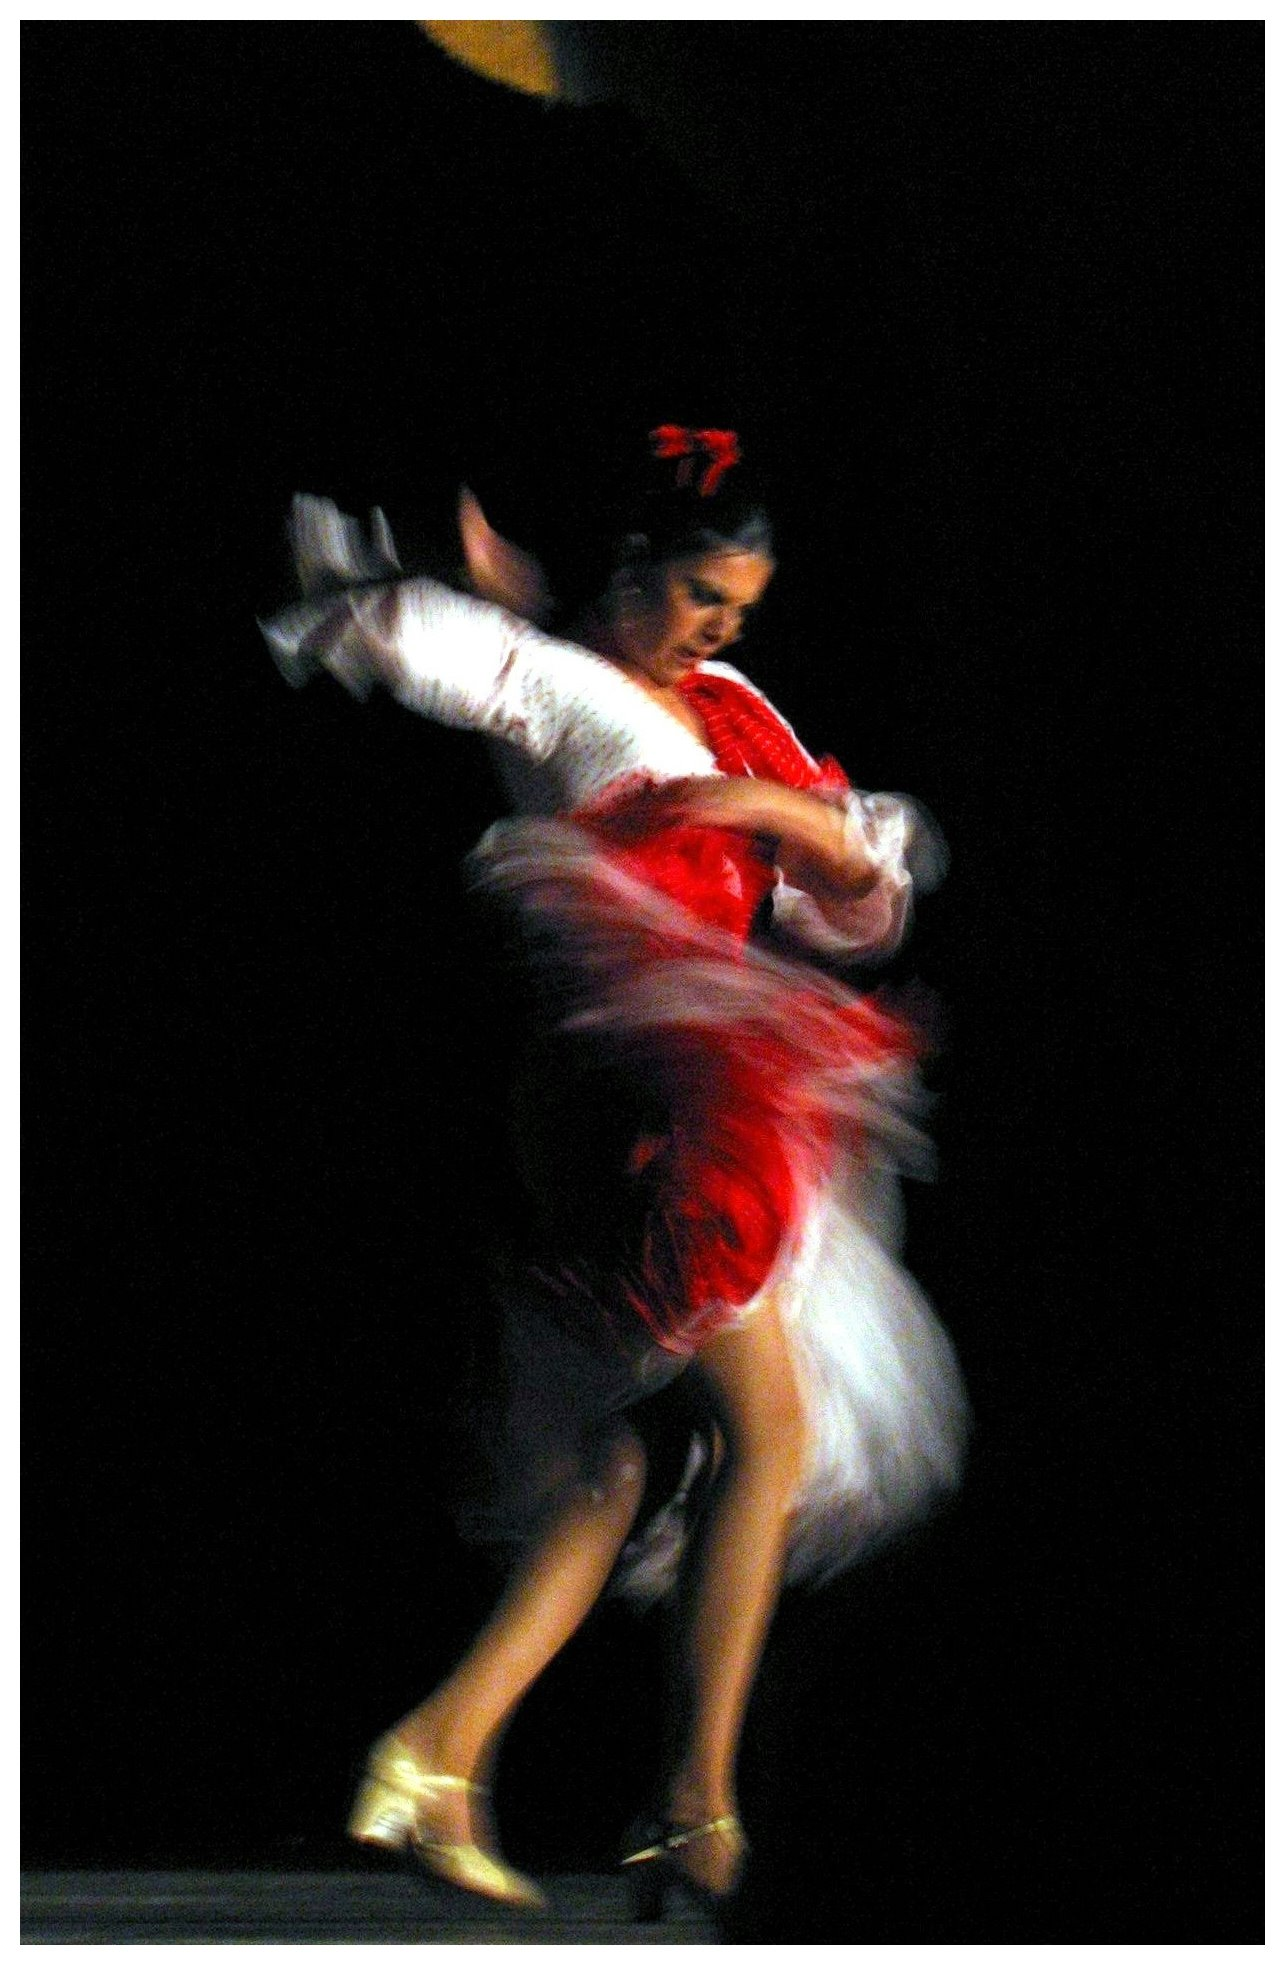 "Flamenco-pace, strength, expressiveness ""poetry in motion""..."